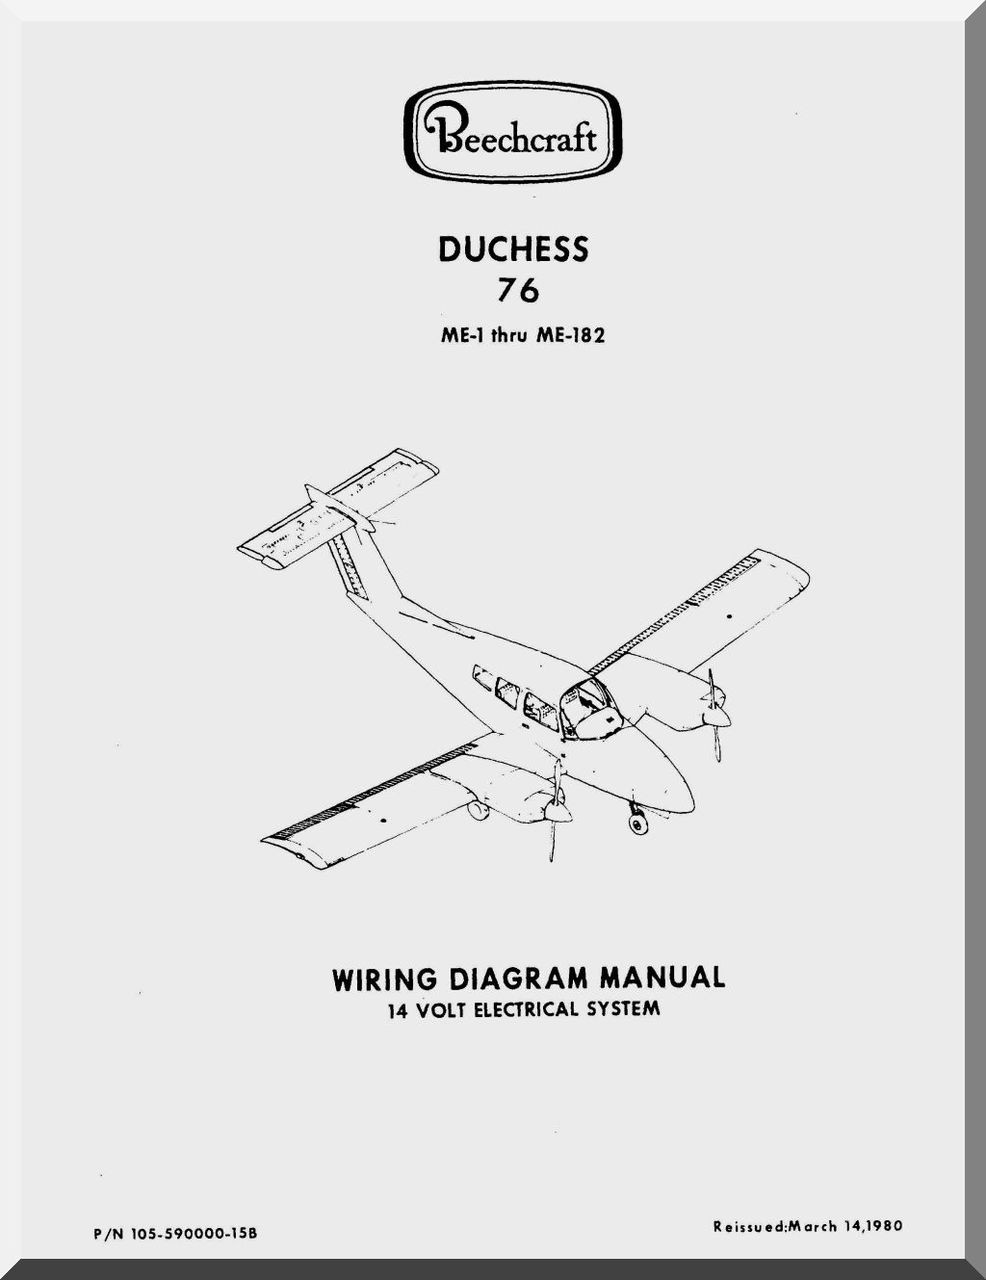 Beechcraft Duchess 76 Me1 thu Me182 Aircraft Wiring Diagrams Manual   Aircraft Reports